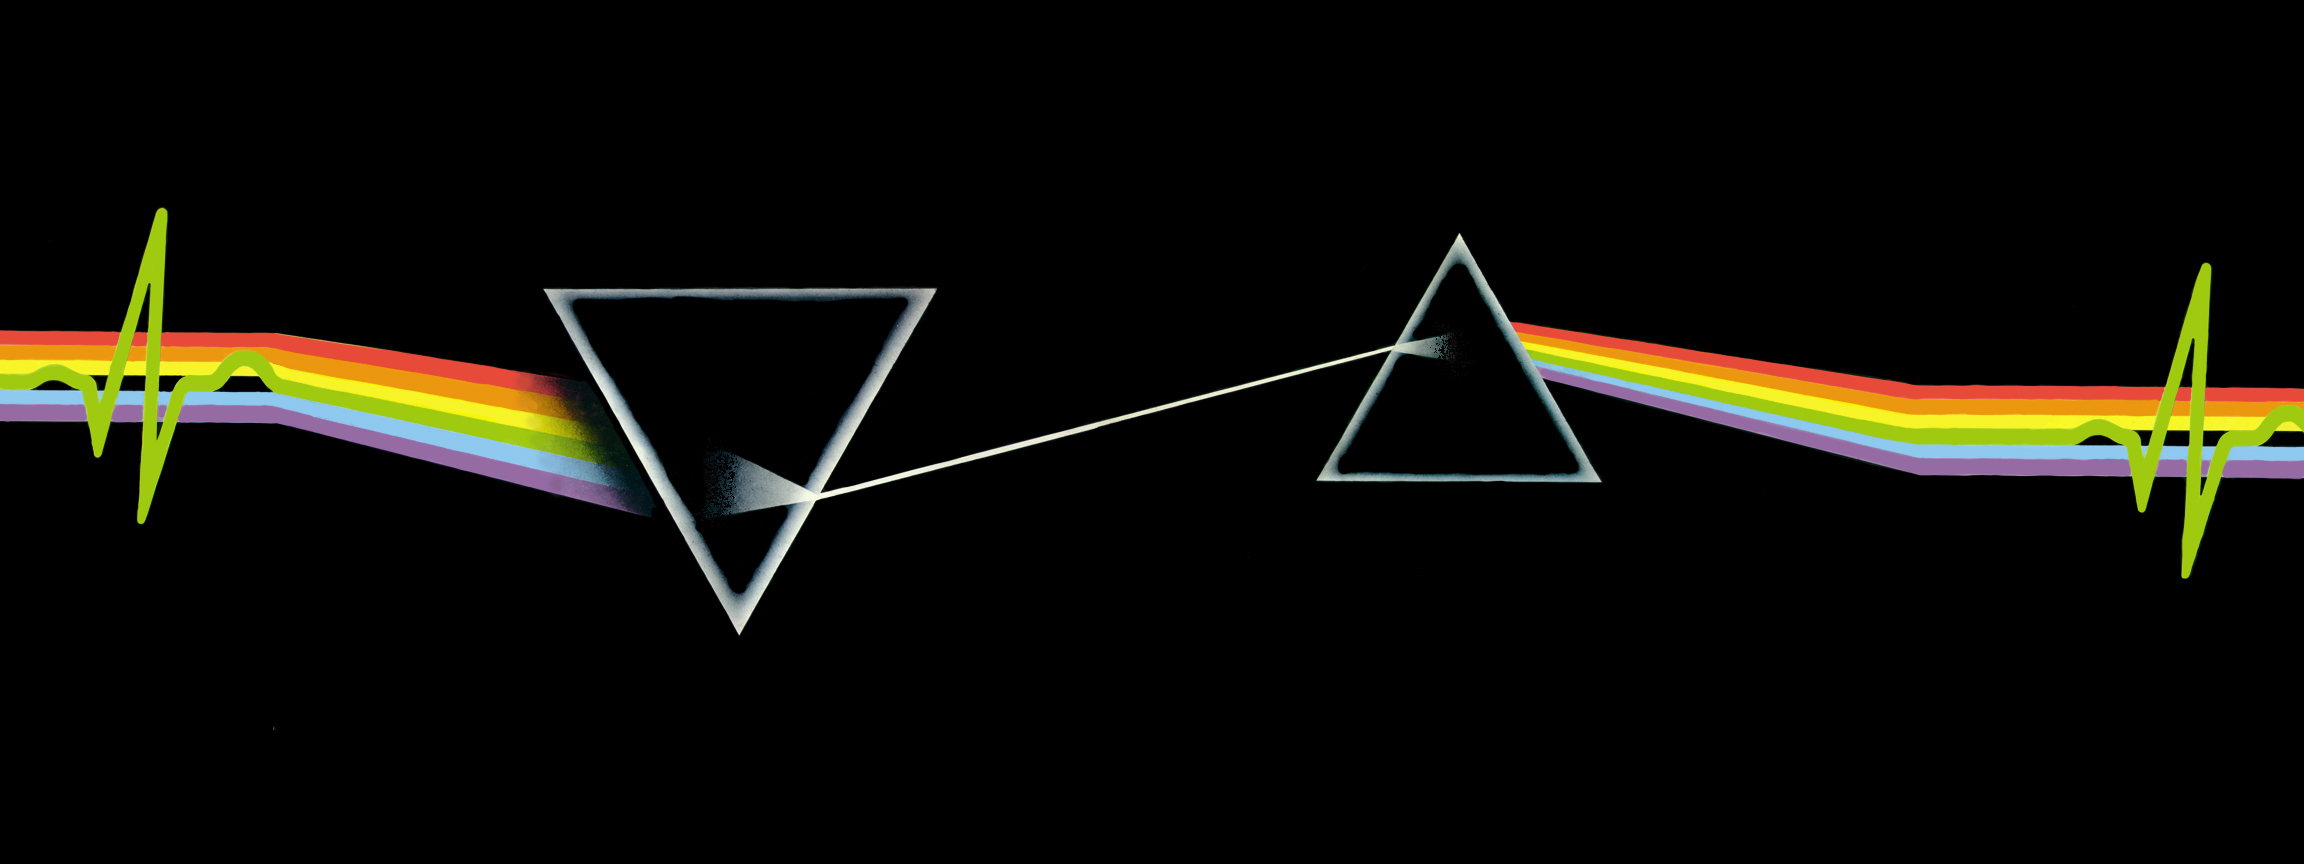 Dark side of the moon by dabeck 2304x864